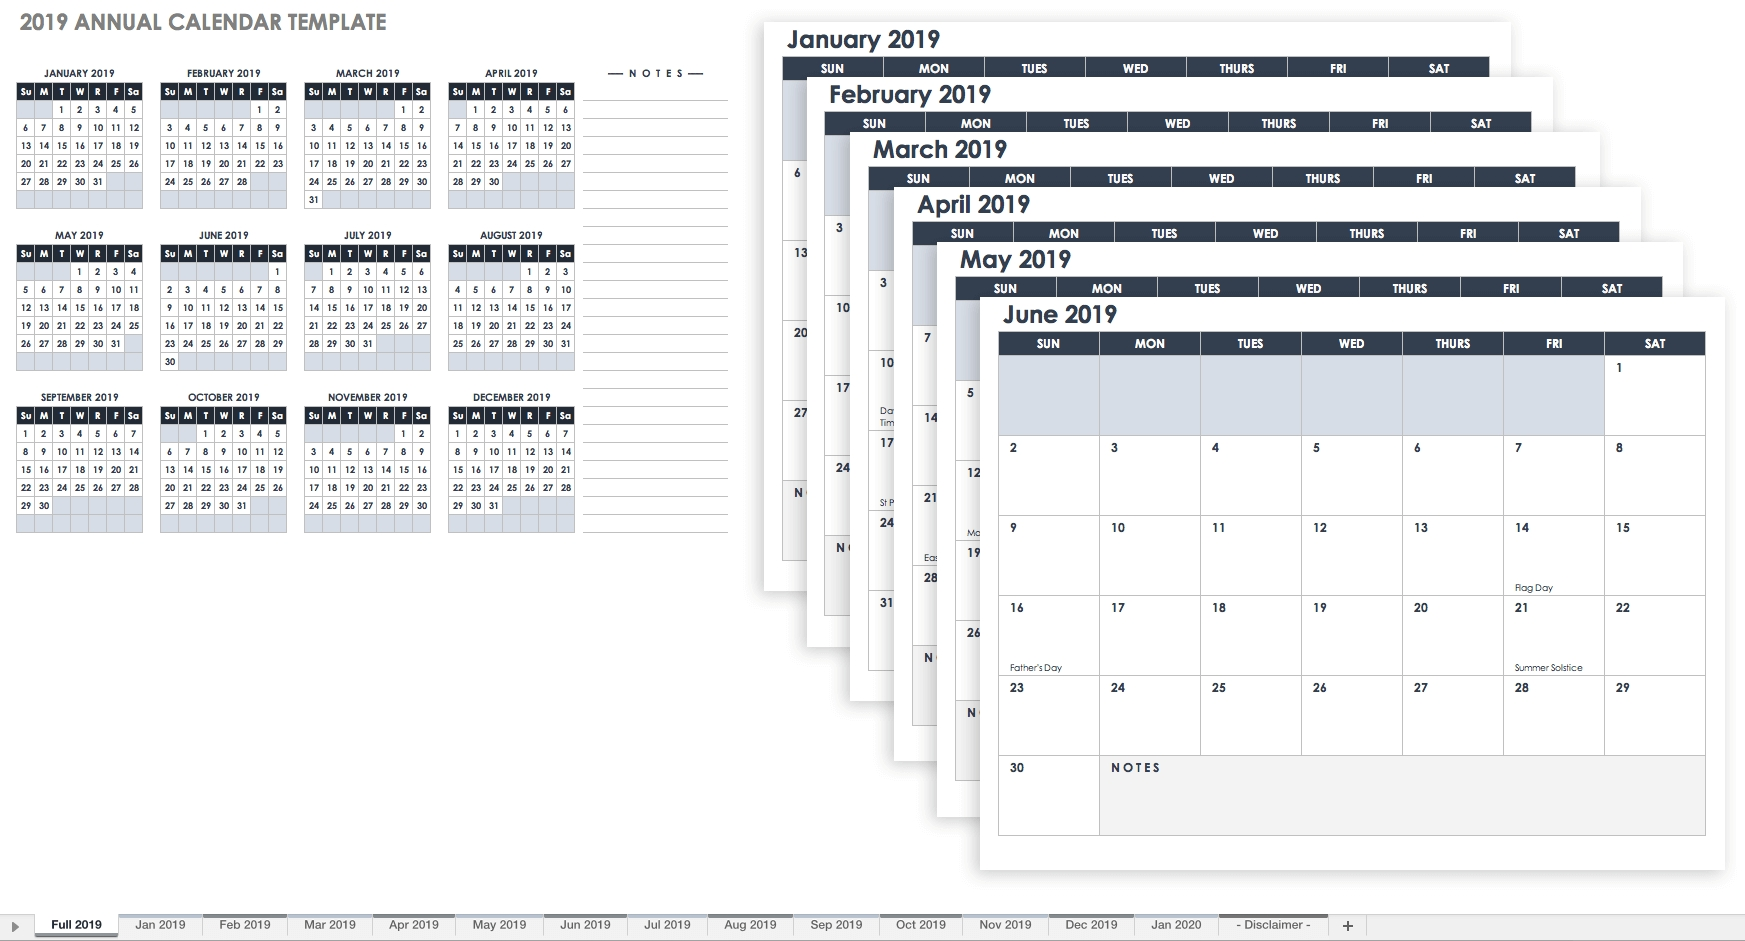 15 Free Monthly Calendar Templates | Smartsheet Remarkable 2020 Yearly Calendar Template Word